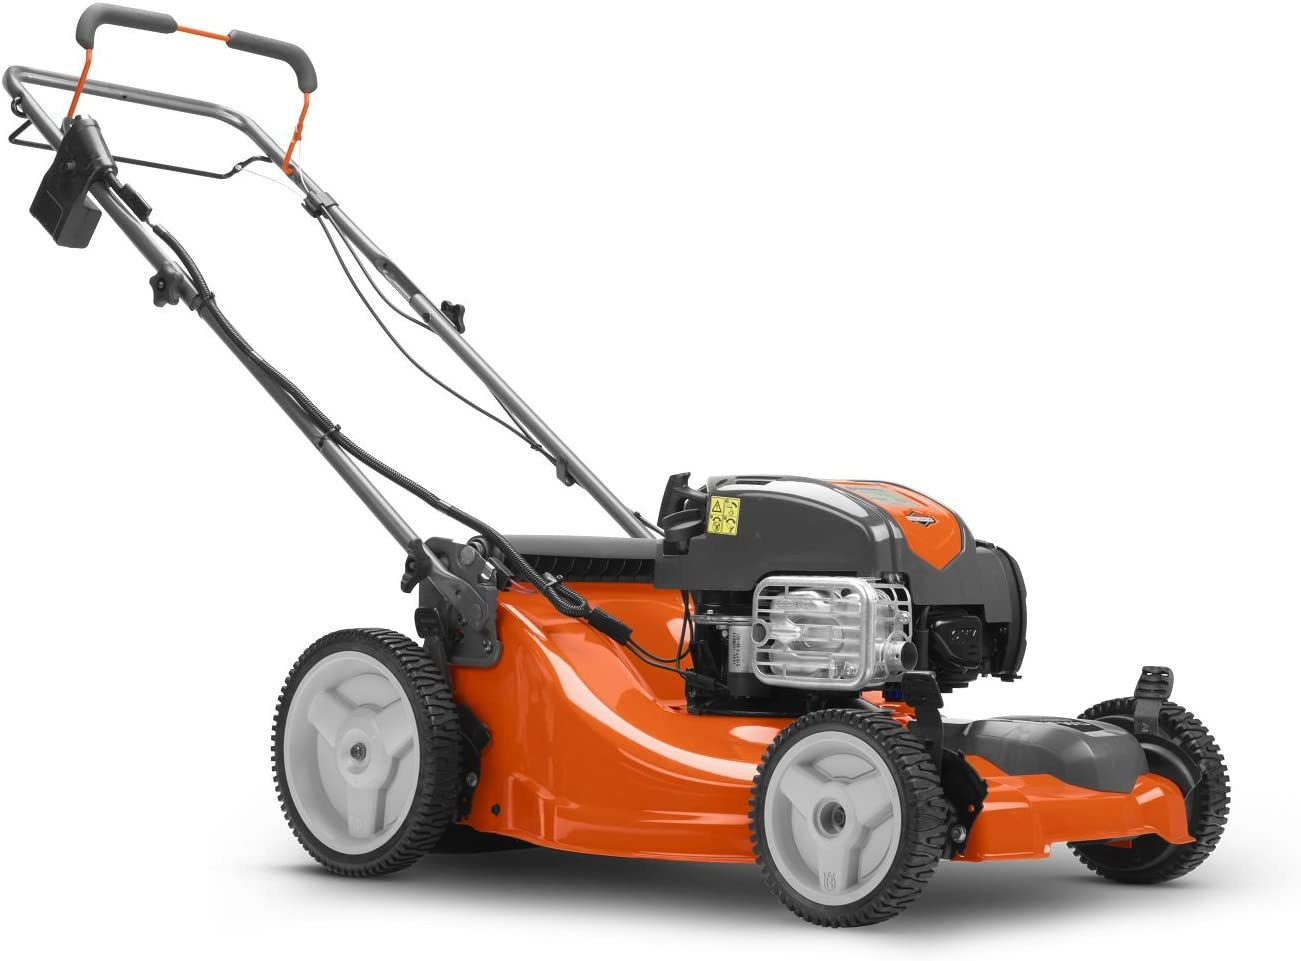 Husqvarna LC221FHE, 21 in. 163cc Briggs & Stratton Walk Behind Self-Propelled Mower